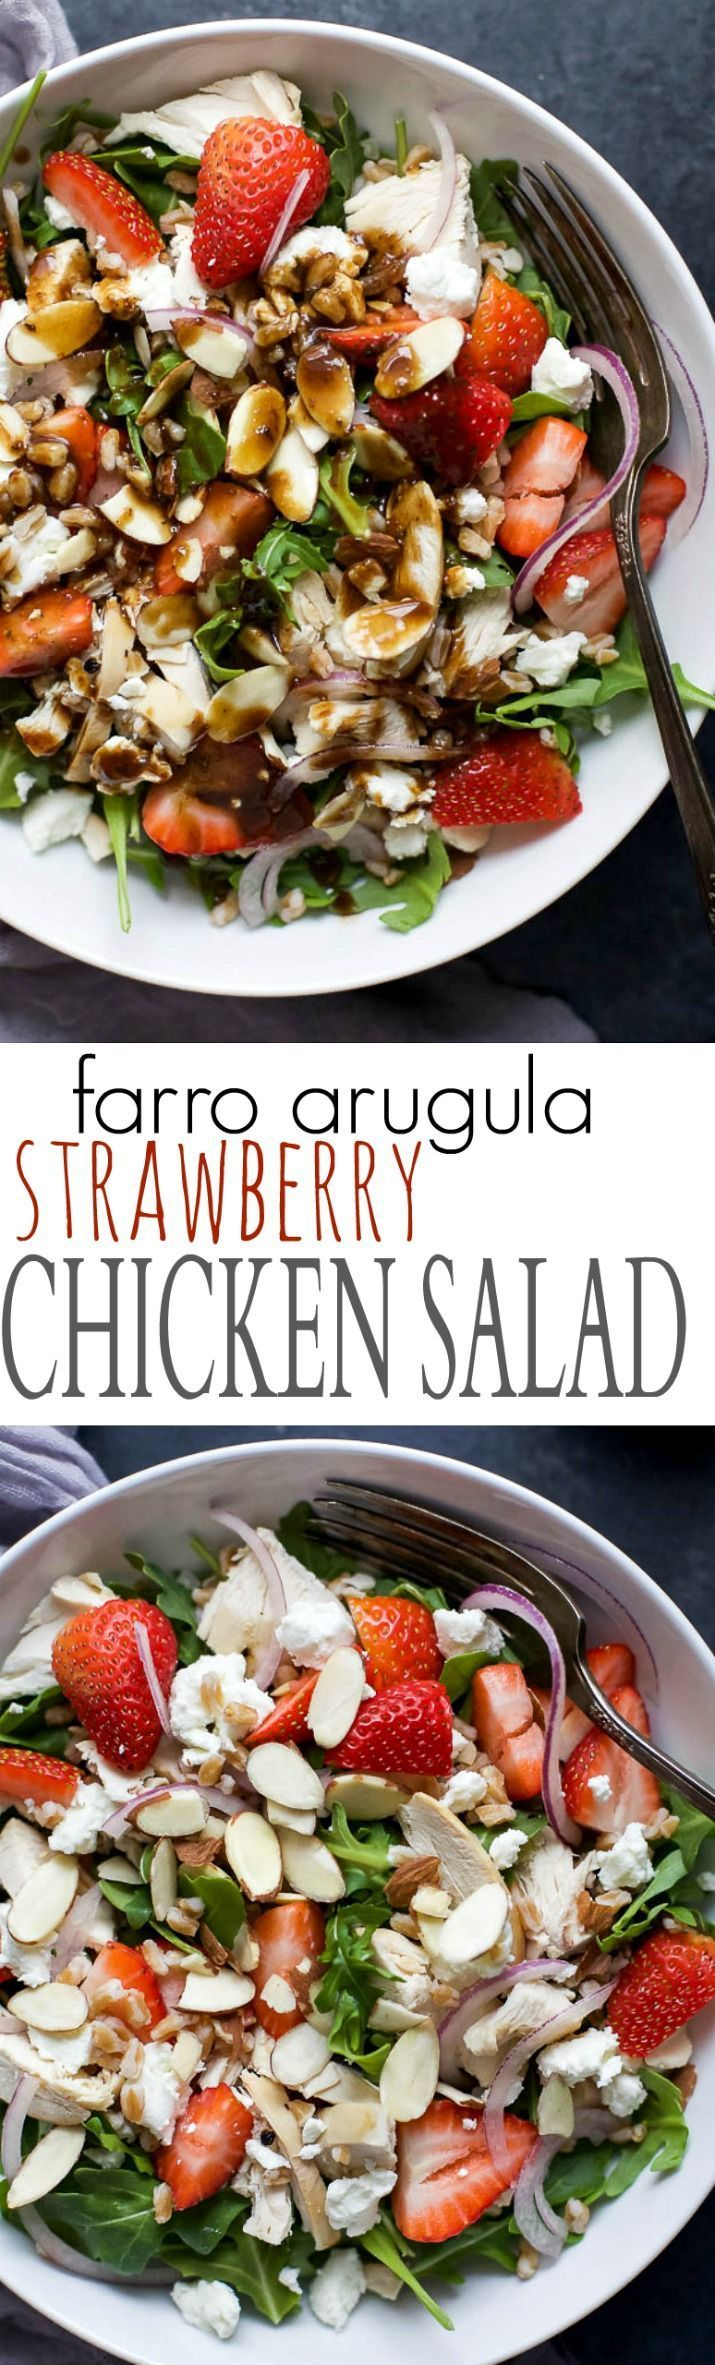 Fresh ingredients make this FARRO ARUGULA STRAWBERRY CHICKEN SALAD shine. A super simple salad to throw together for lunch or dinner that's friendly on the waistline! | http://joyfulhealthyeats.com